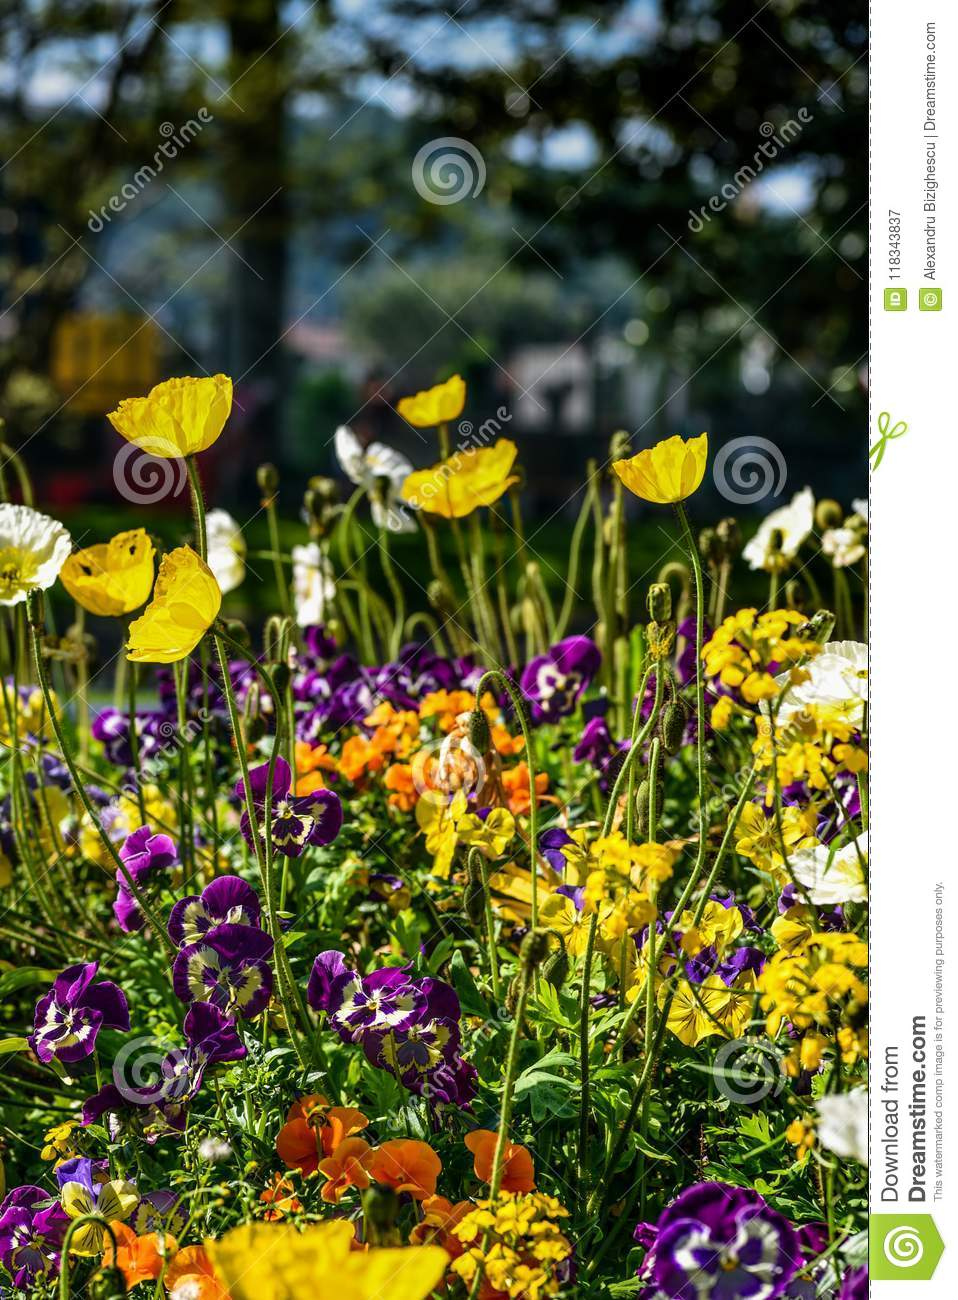 Colorful poppies and other flowers in a public garden